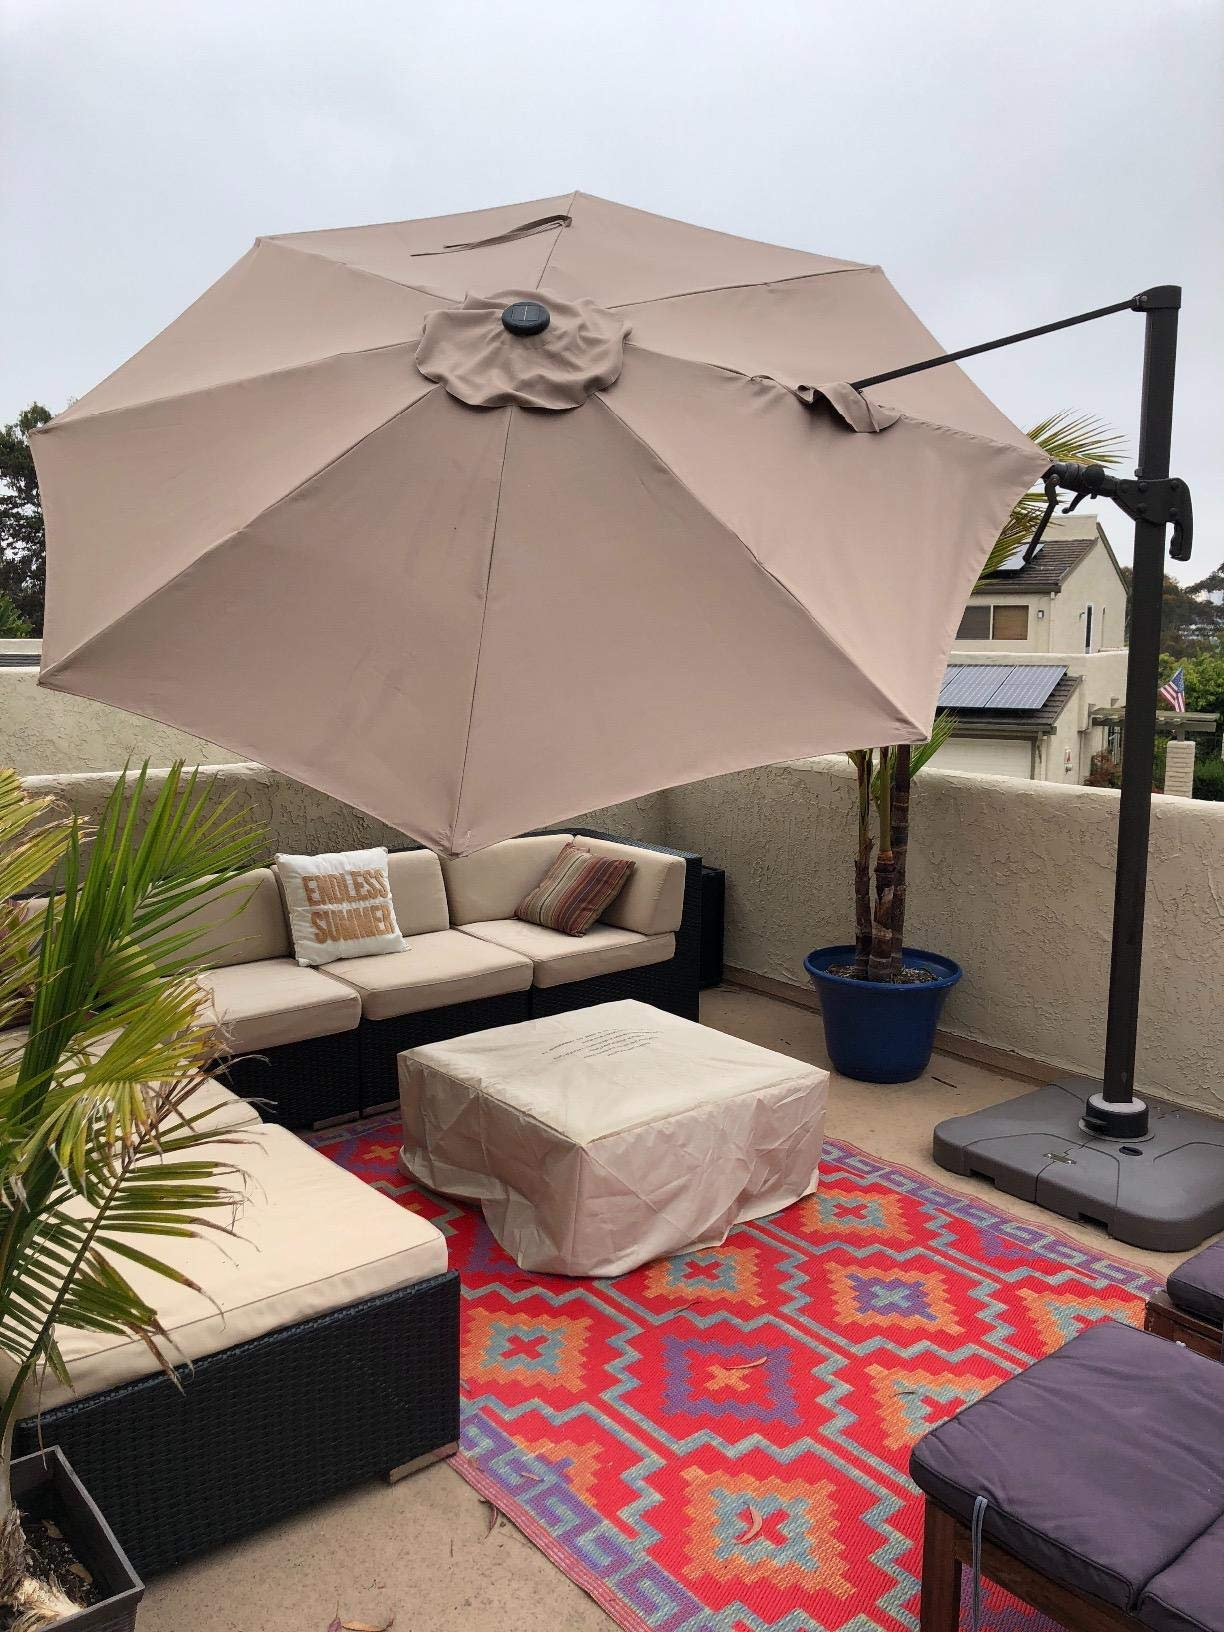 Formosa Covers Replacement Umbrella Canopy for 11ft 8 Rib Supported bar Cantilever Market Outdoor Patio Shades in Taupe Ribs Length 64'' to 66'' (Canopy Only) by Formosa Covers (Image #5)